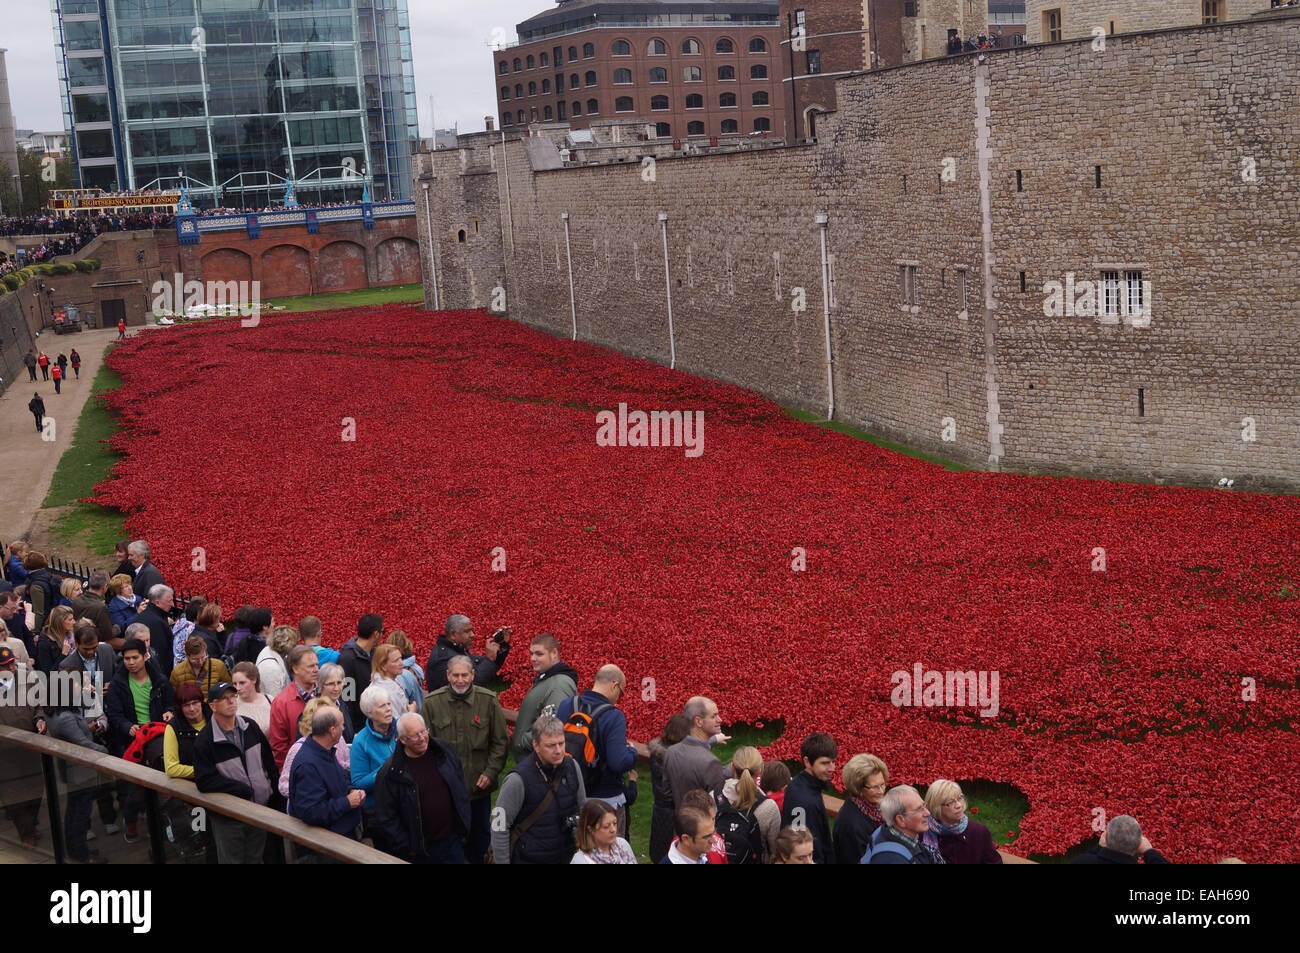 Visitors to the Tower of London view the art installation 'Blood Swept Lands and Seas of Red' in commemoration - Stock Image